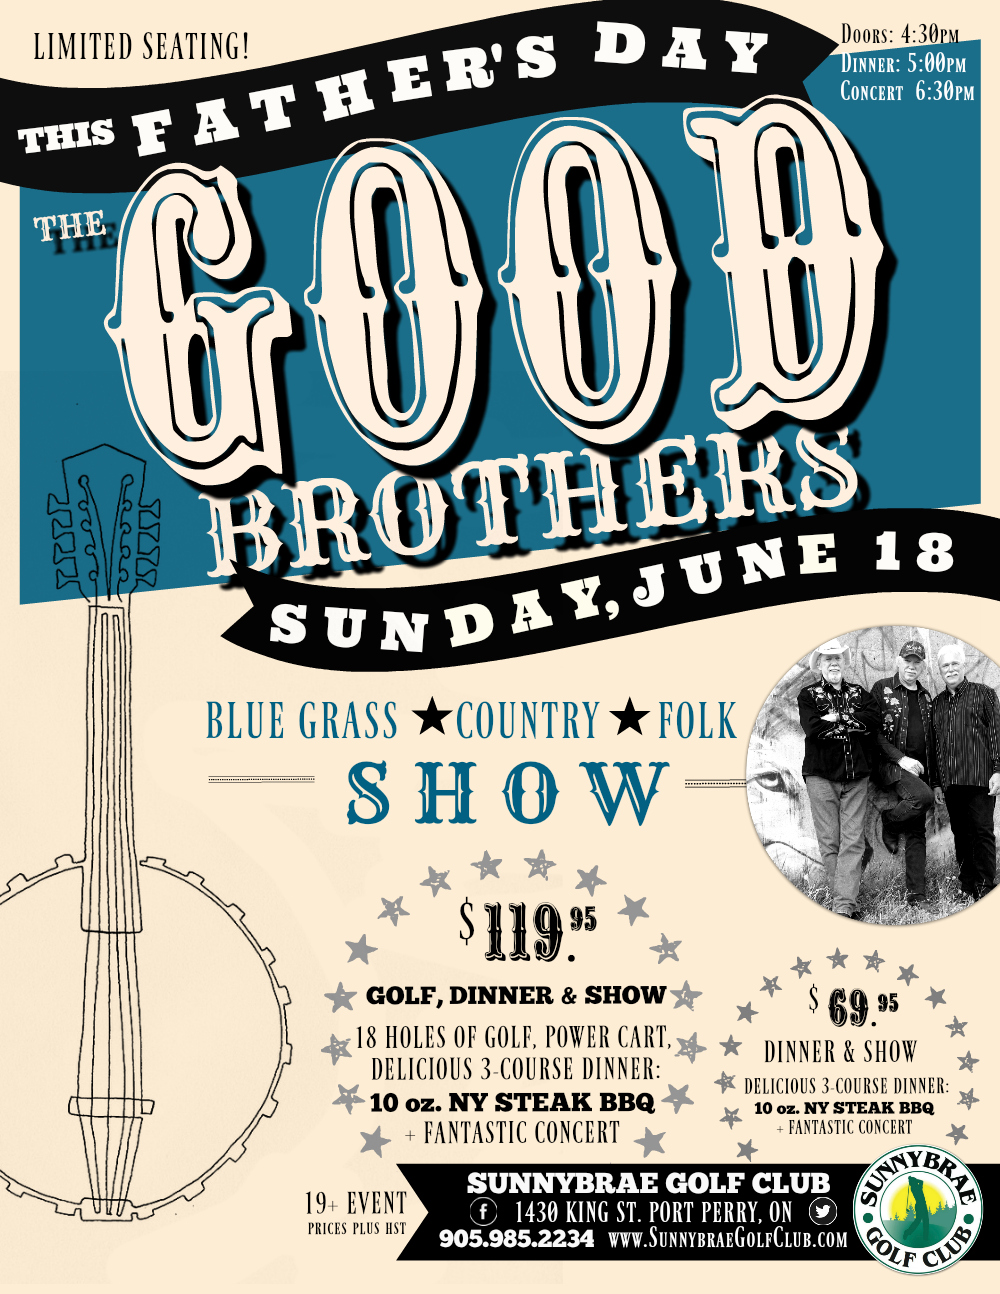 The Good Brothers in Concert at Sunnybrae this Father's Day!